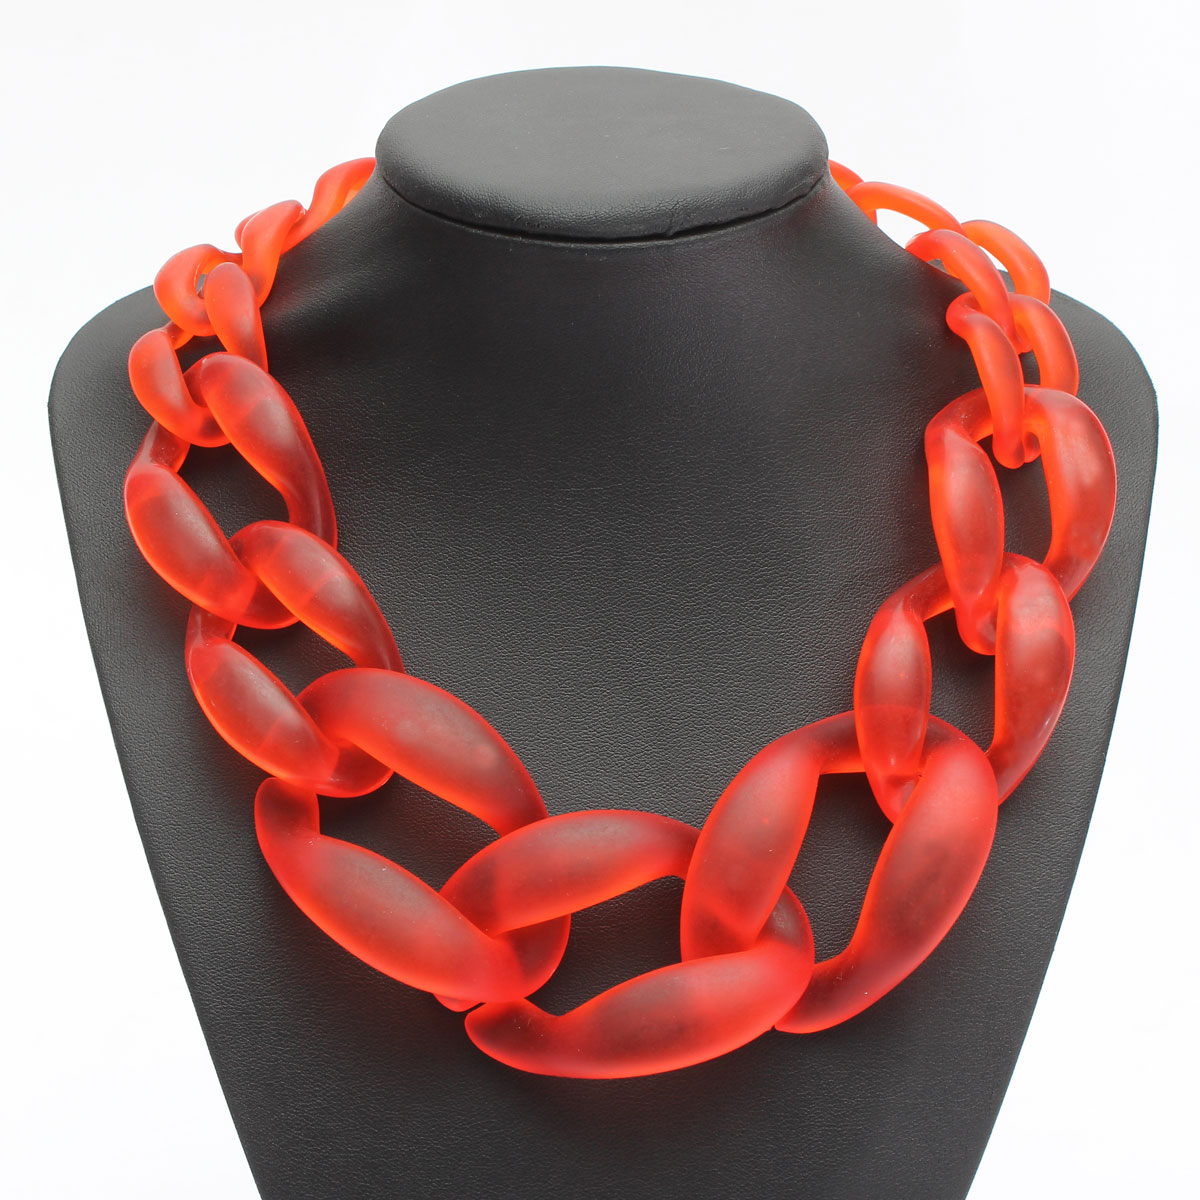 Fashion Lady Acrylic Collar Chunky Choker Bib Statement Chain Necklace Pendant